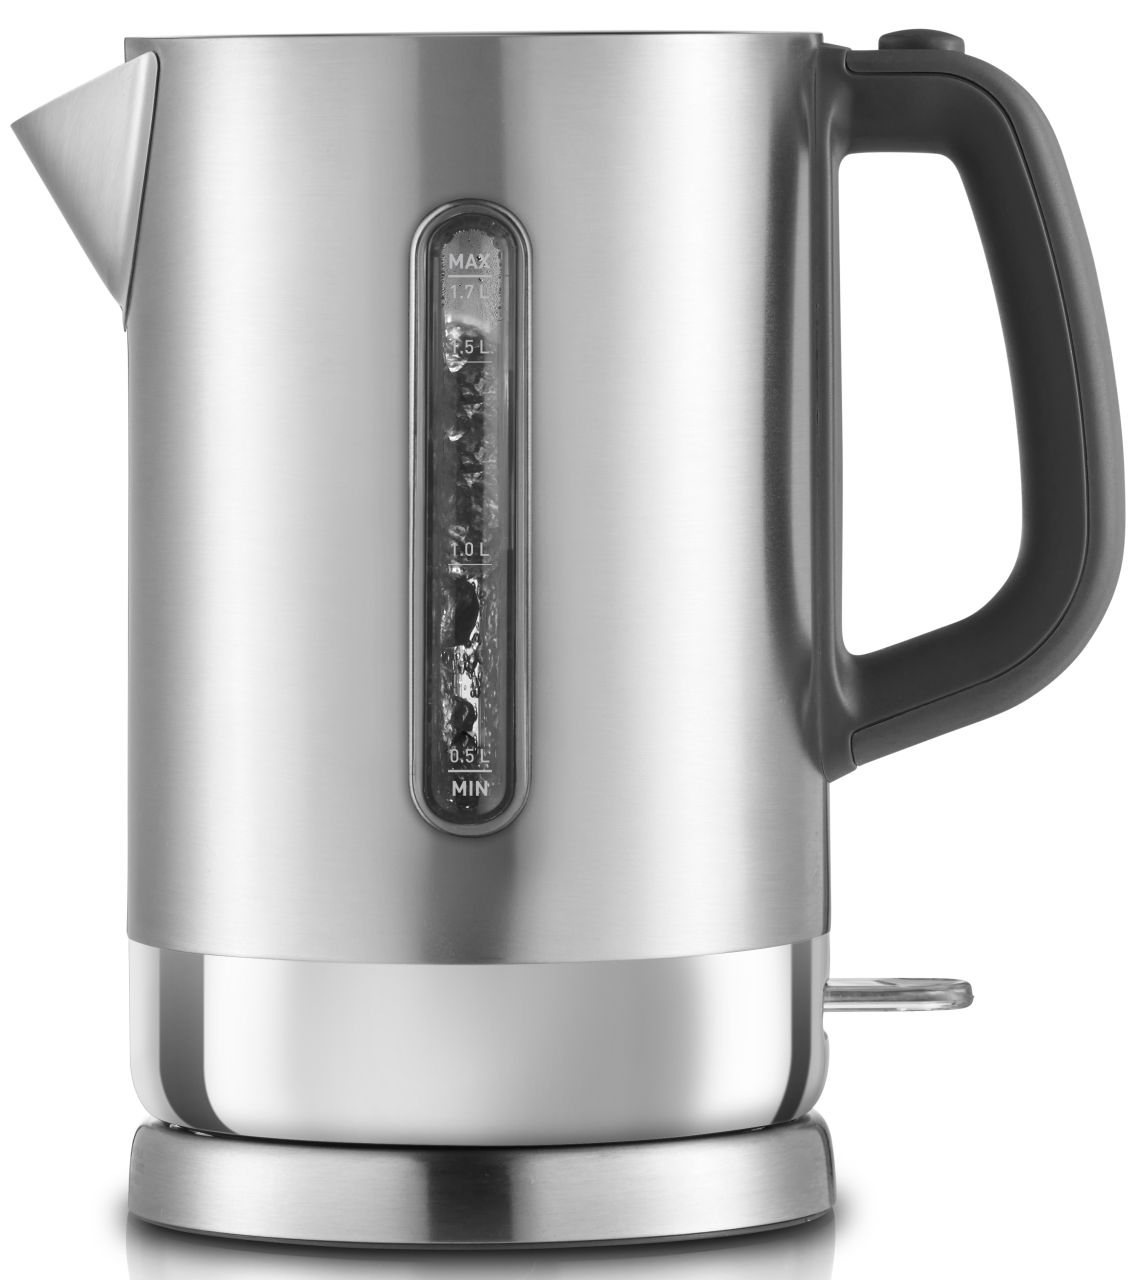 Sunbeam - 1.7L Aspire Quiet Shield Kettle - Stainless Steel